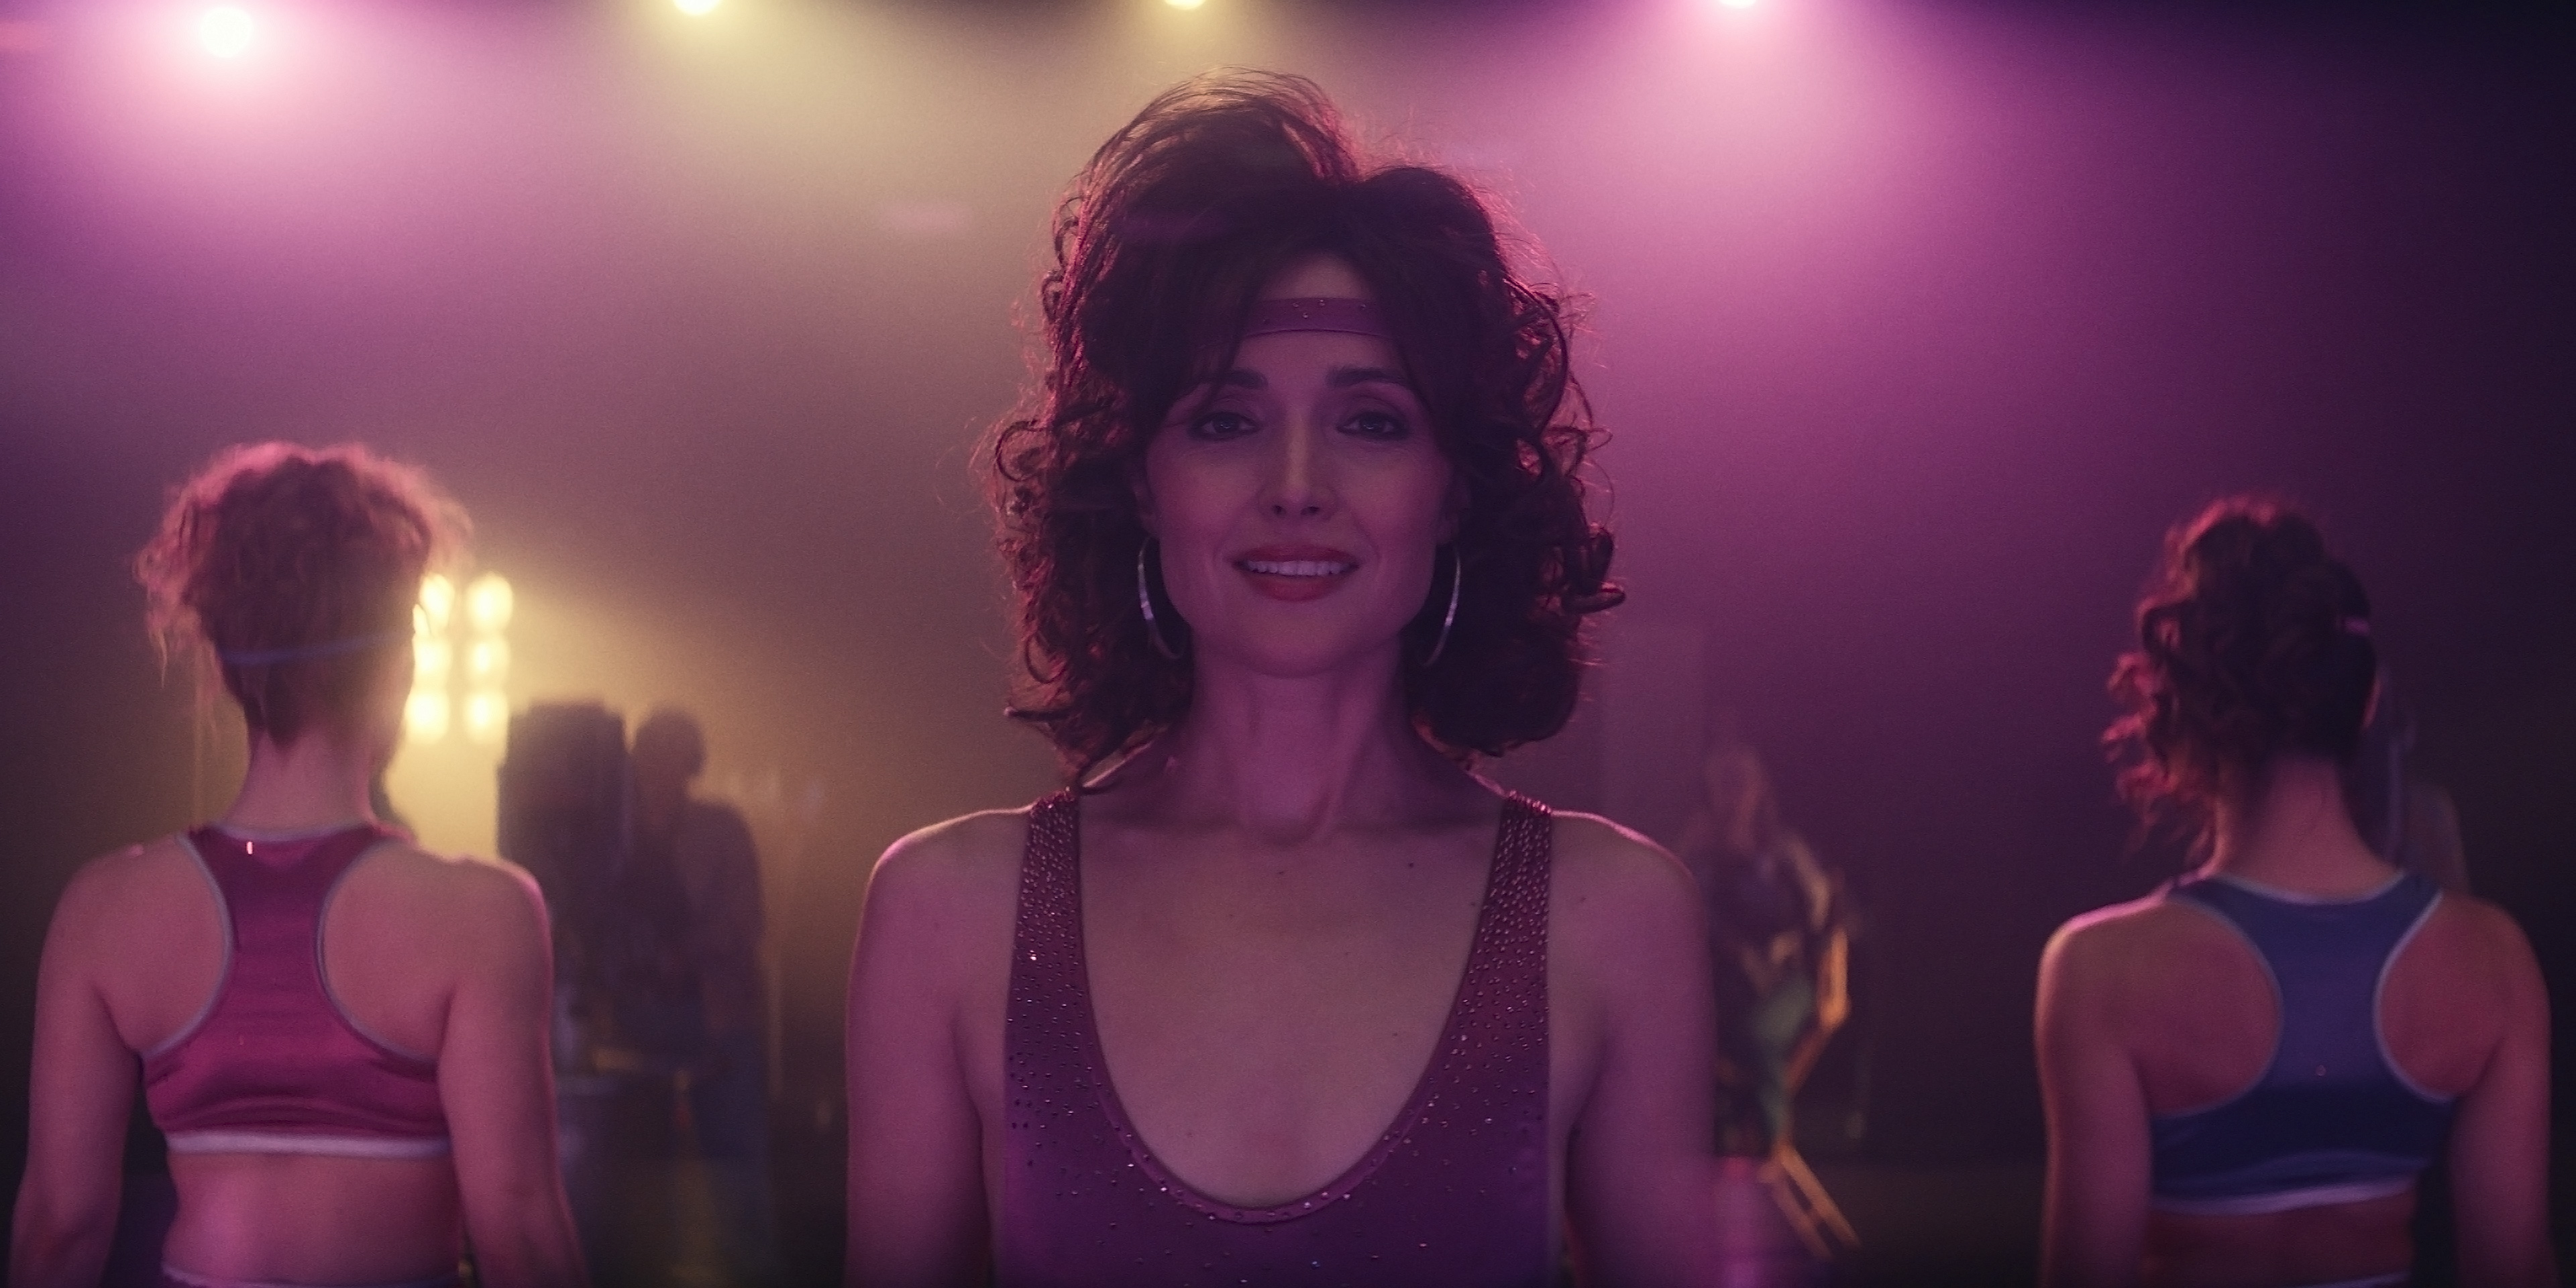 """Rose Byrne in """"Physical,"""" a new dramedy from creator Annie Weisman, premiering June 18, 2021 on Apple TV+."""